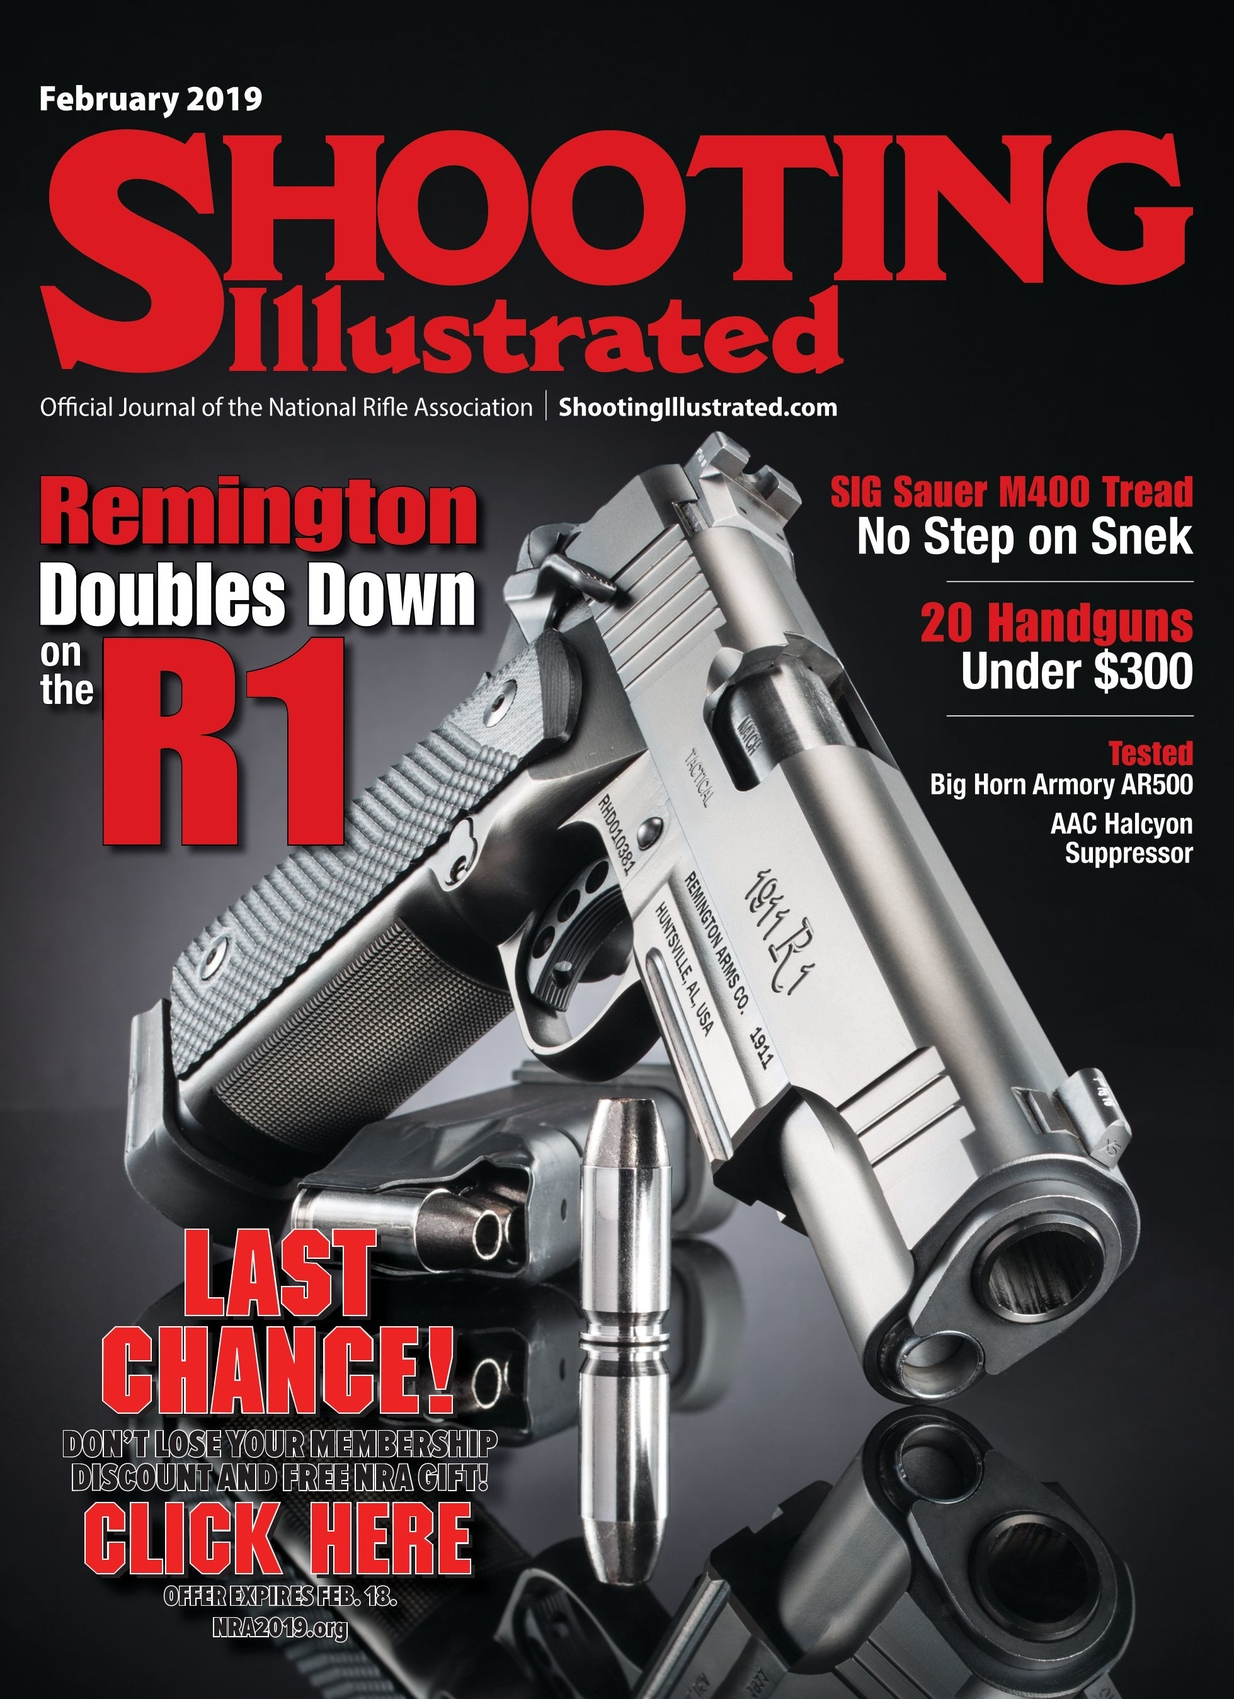 f67be109c7a Shooting Illustrated - February 2019 - Cover1